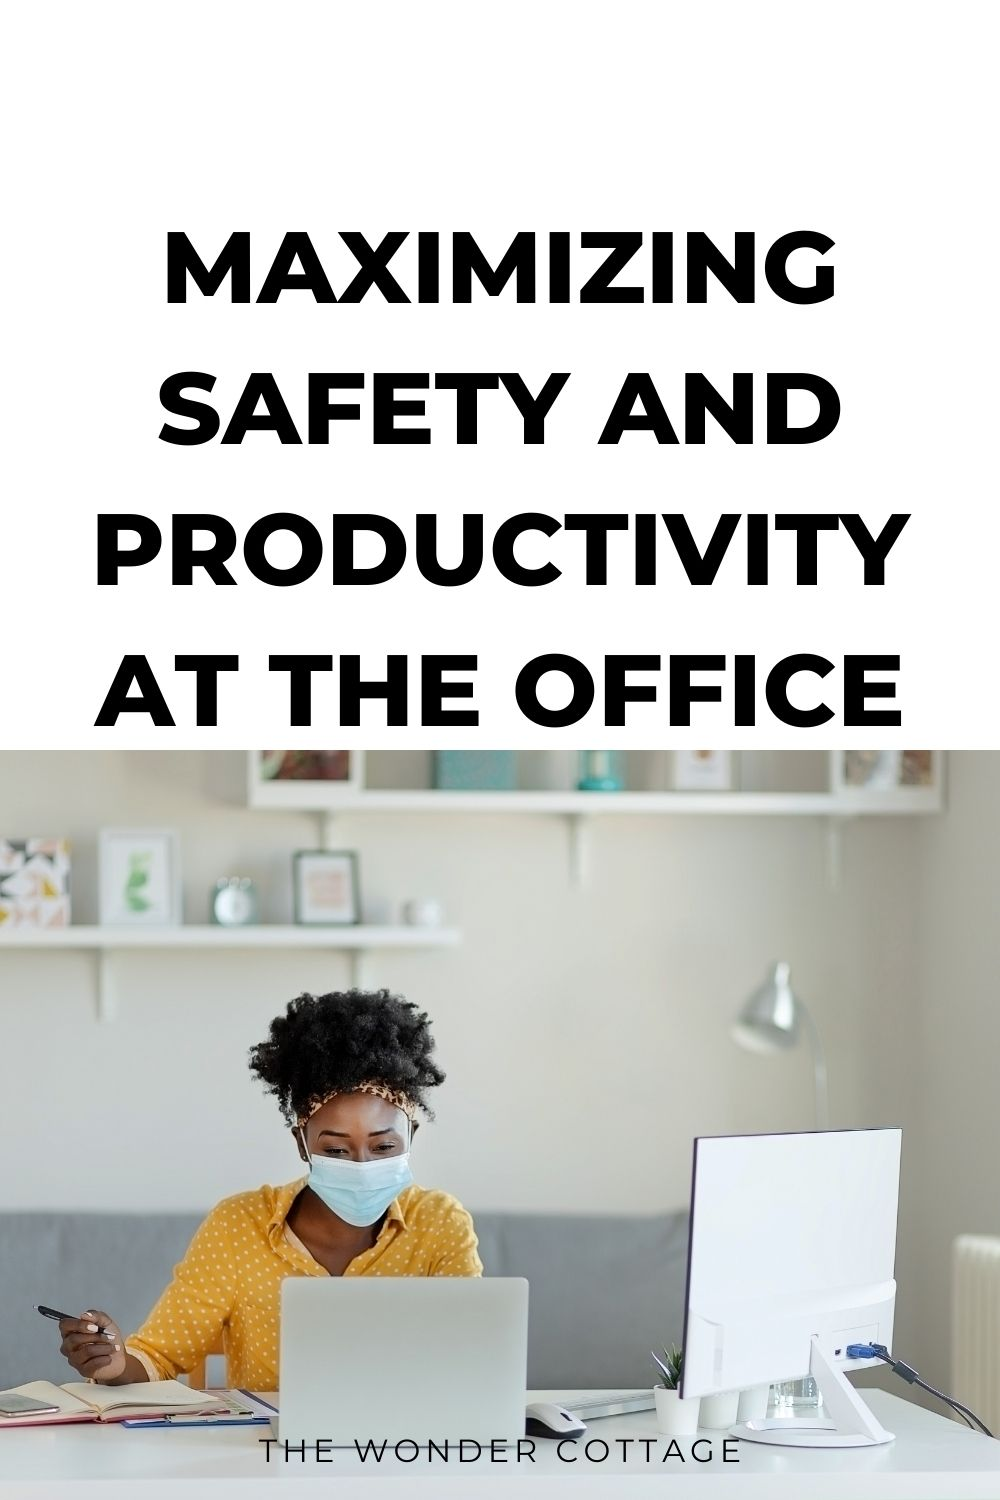 Maximizing Safety and Productivity at the Office